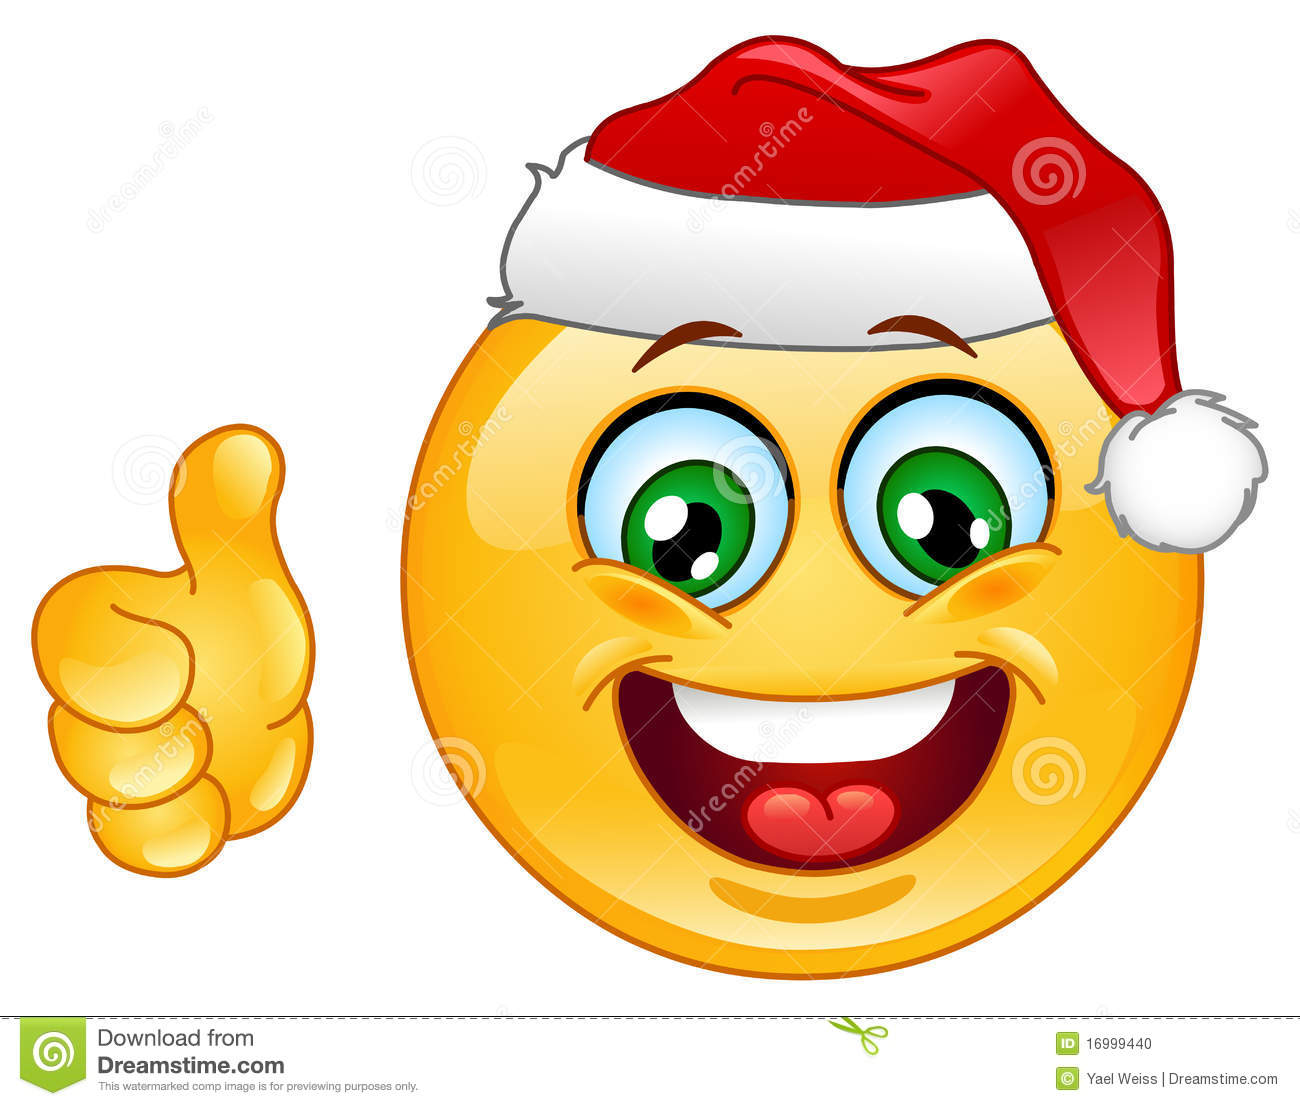 Christmas Emoji.Christmas Emoticon Stock Vector Illustration Of Chat 16999440